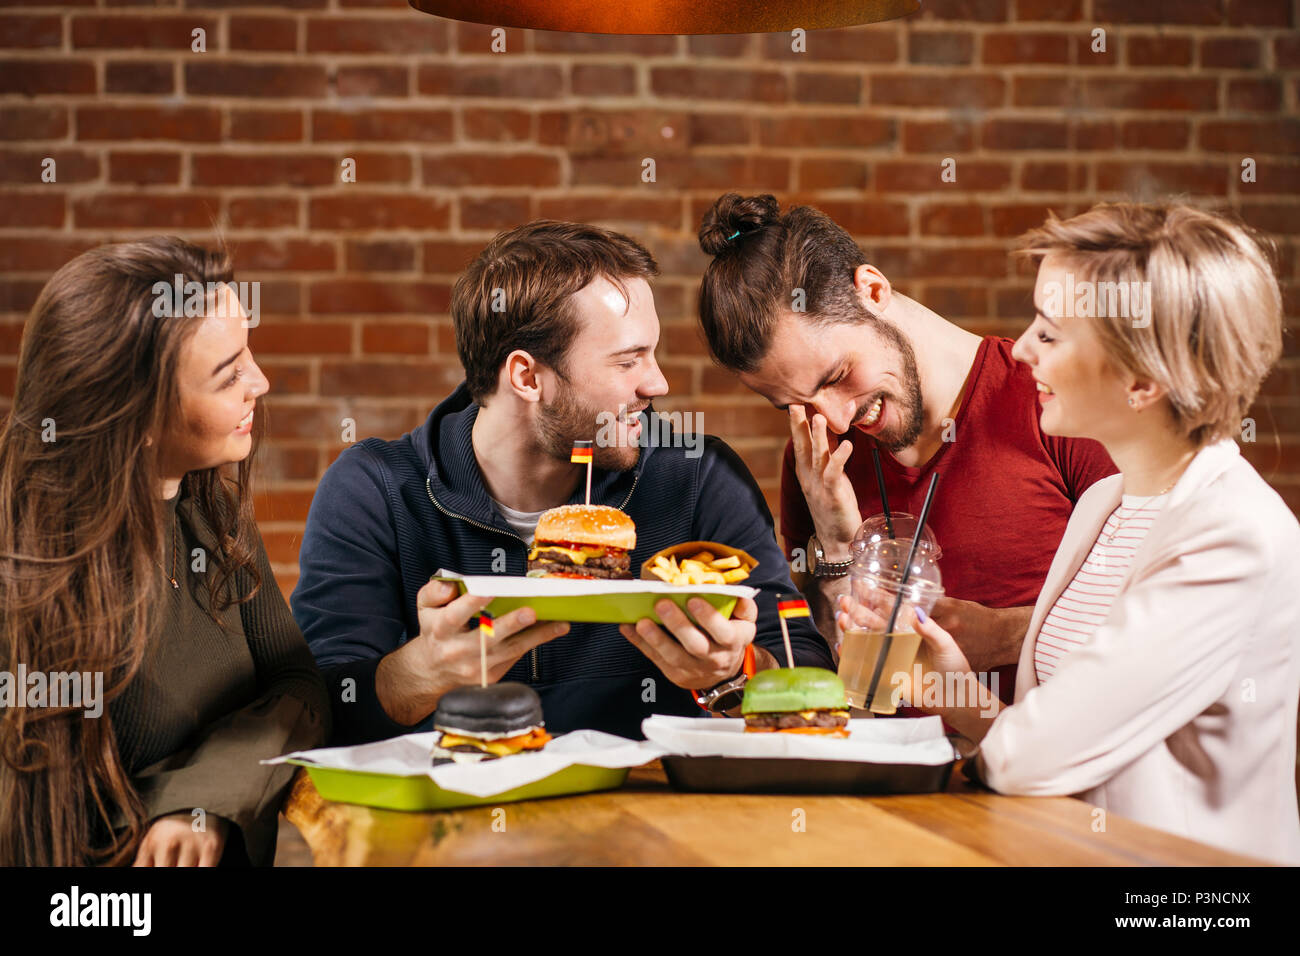 Group Of Young Friends Meeting In Cafe. - Stock Image